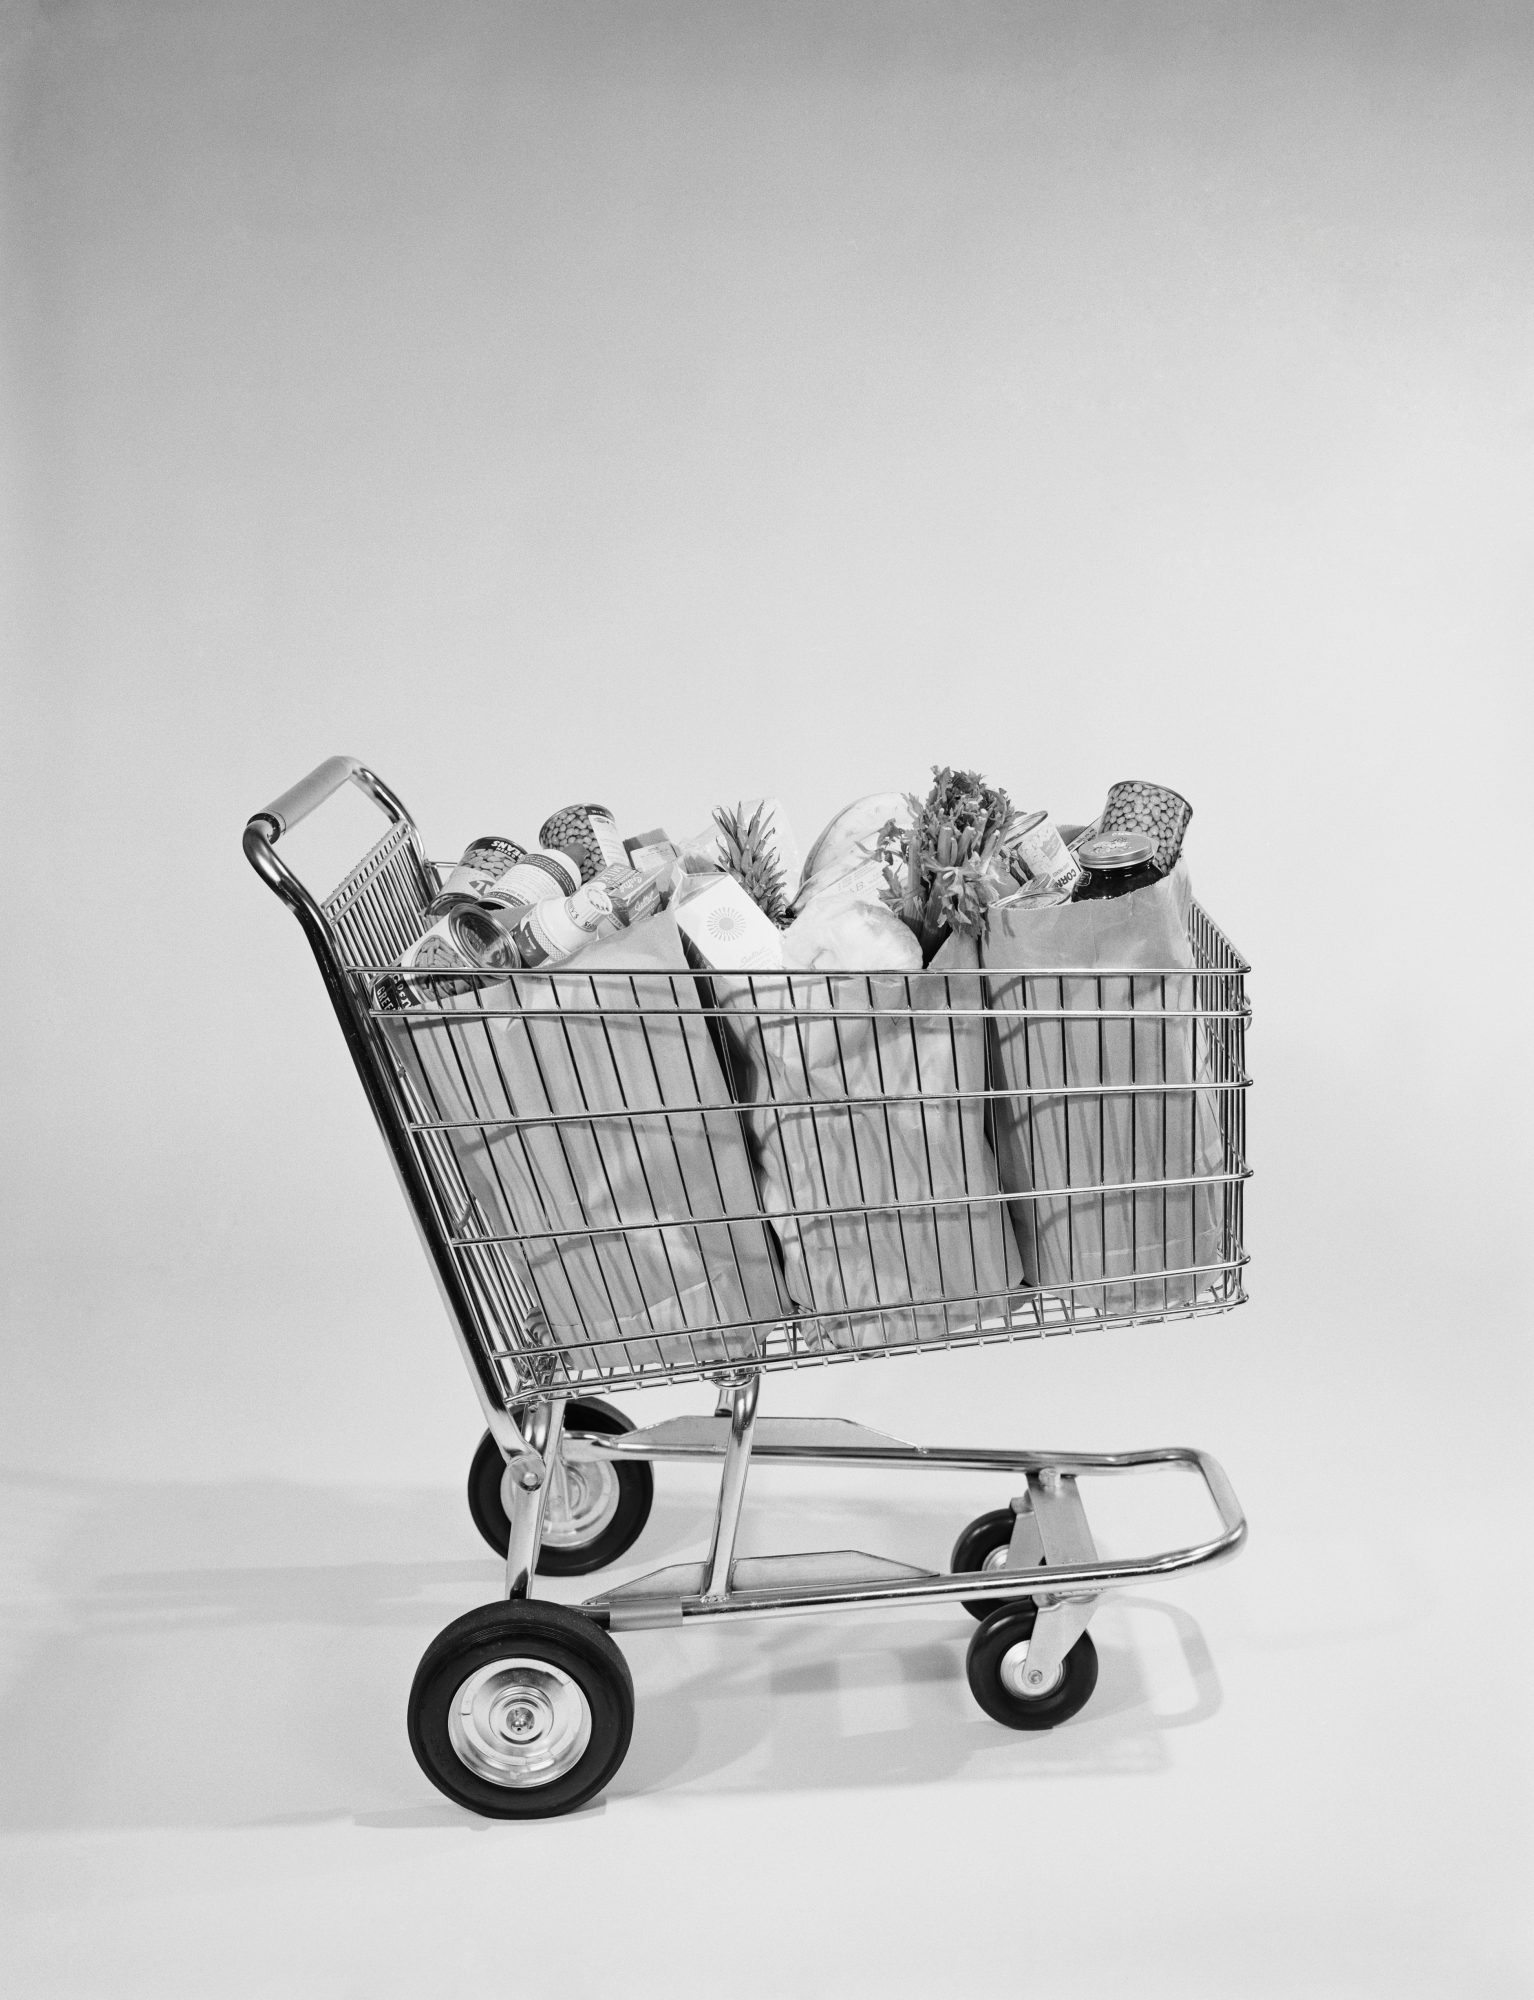 Shopping Cart with Groceries